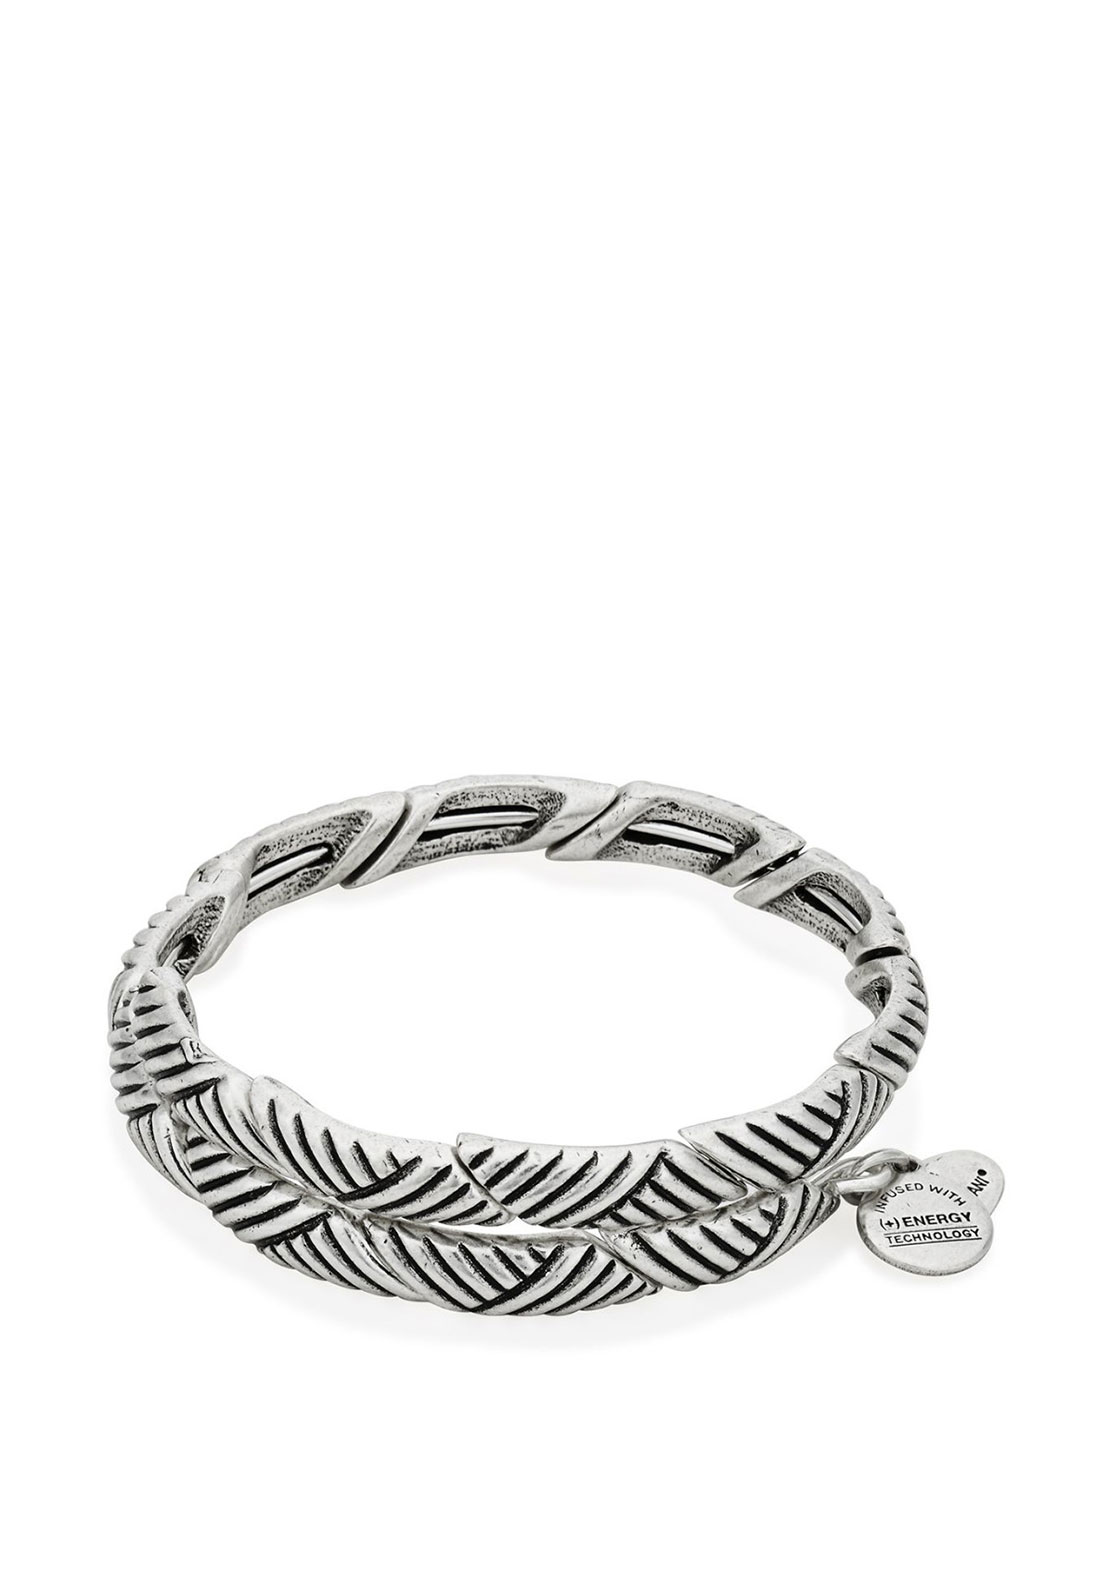 Alex and Ani Rolling Hills Wrap Bracelet, Silver